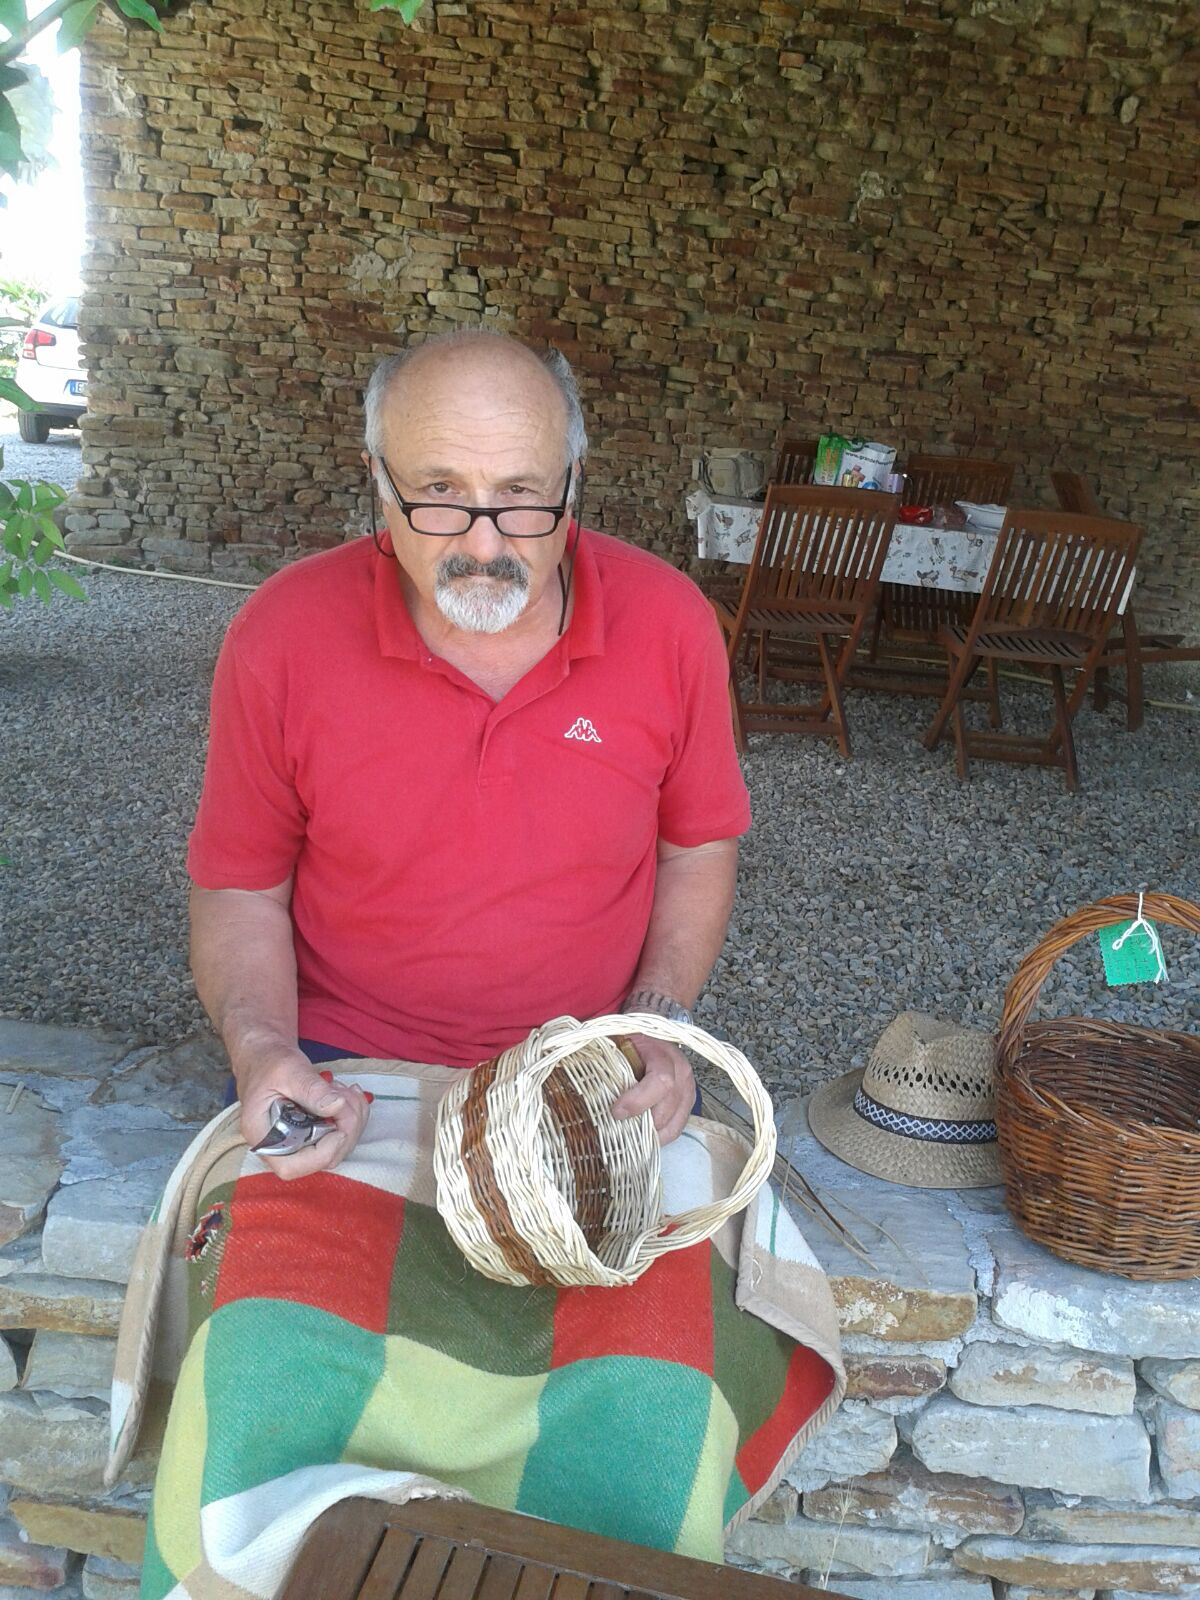 The Langhe baskets maker